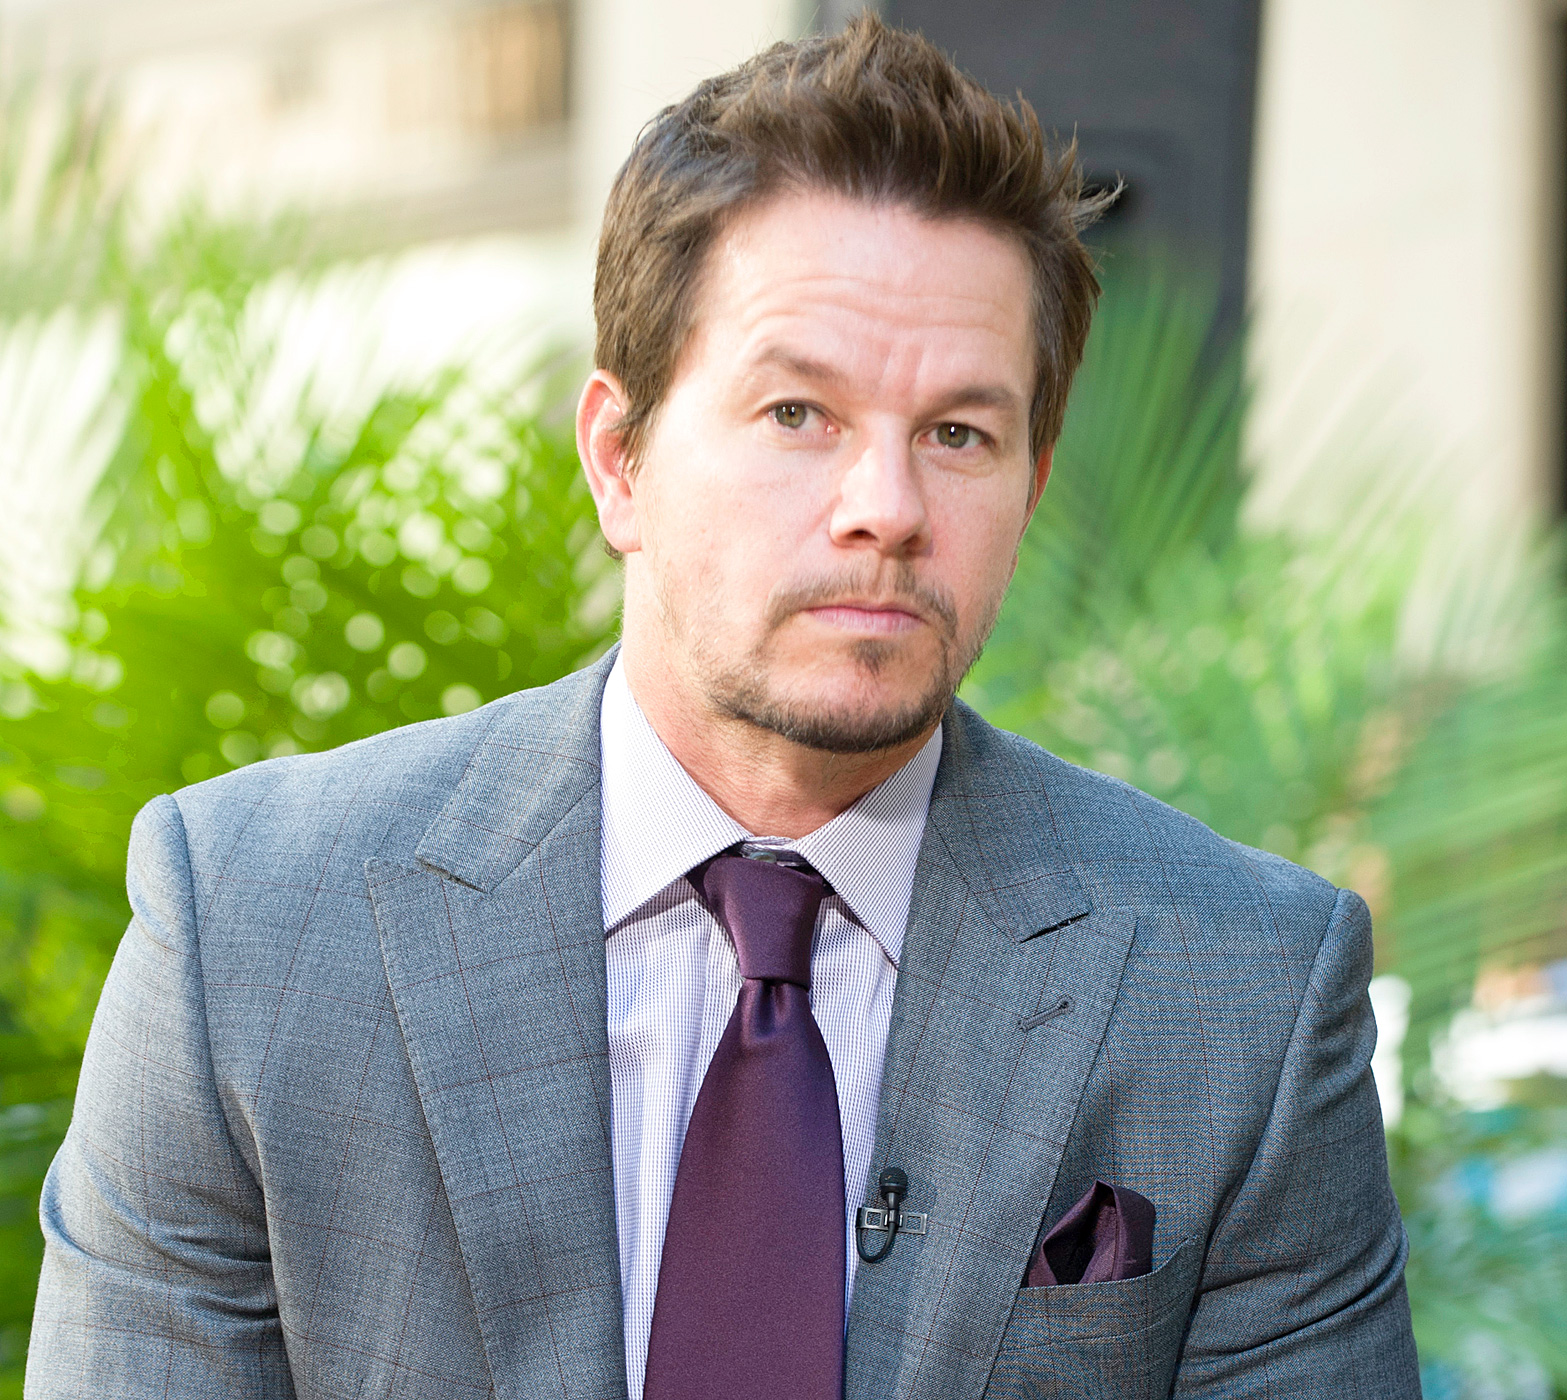 Mark Wahlberg appears on 'Today' show